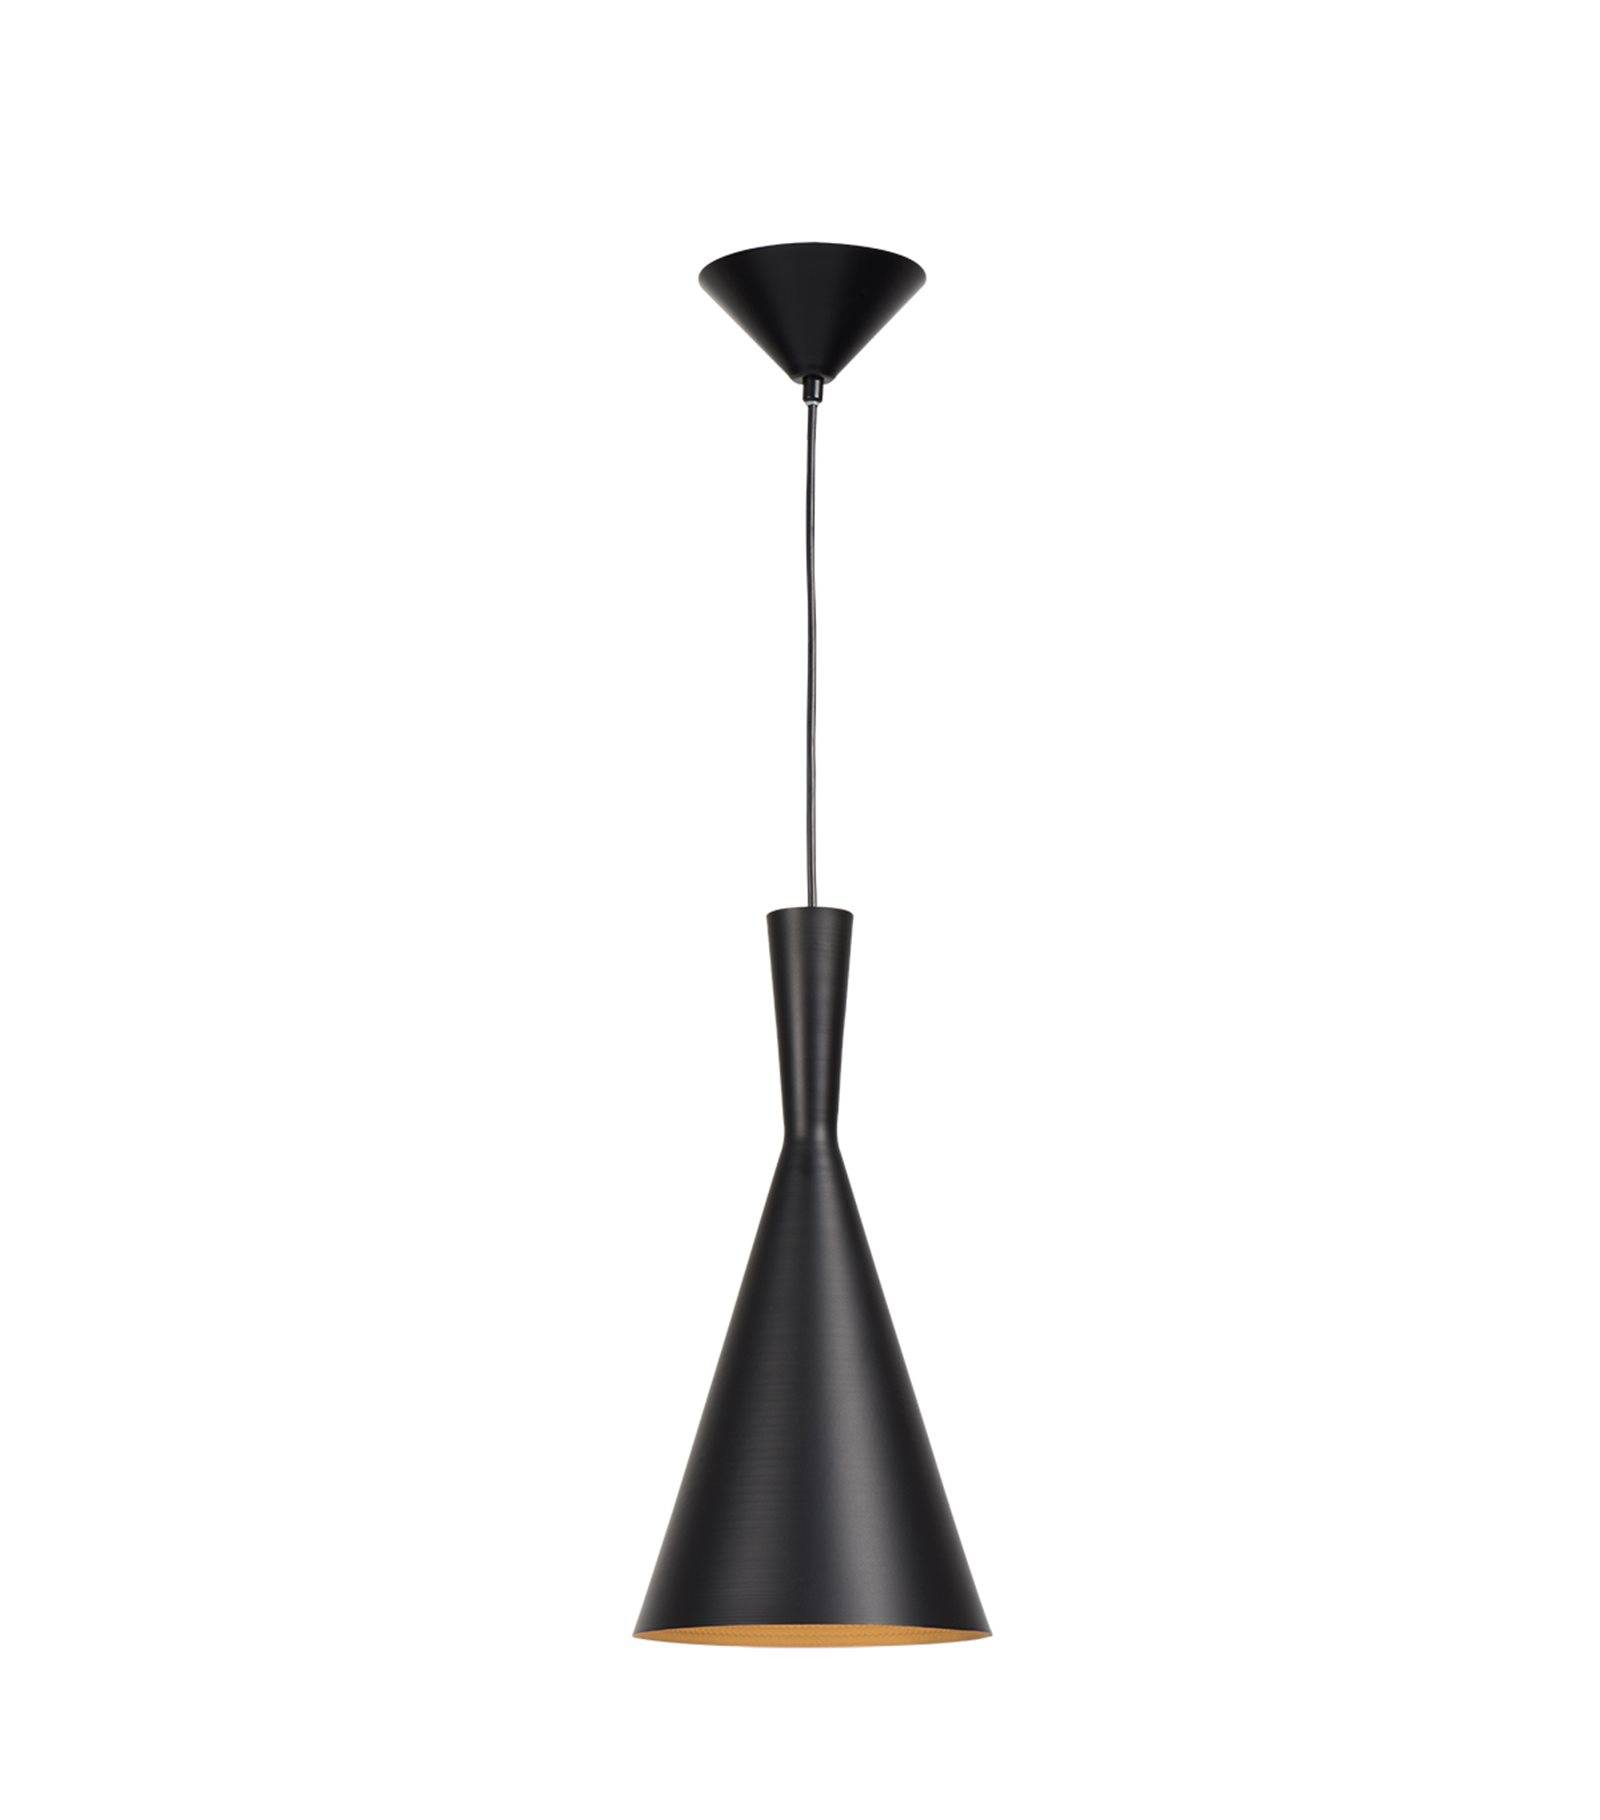 Luminaire Suspension Trendy Plafonnier Luminaire Suspension Bellie Noir Conique